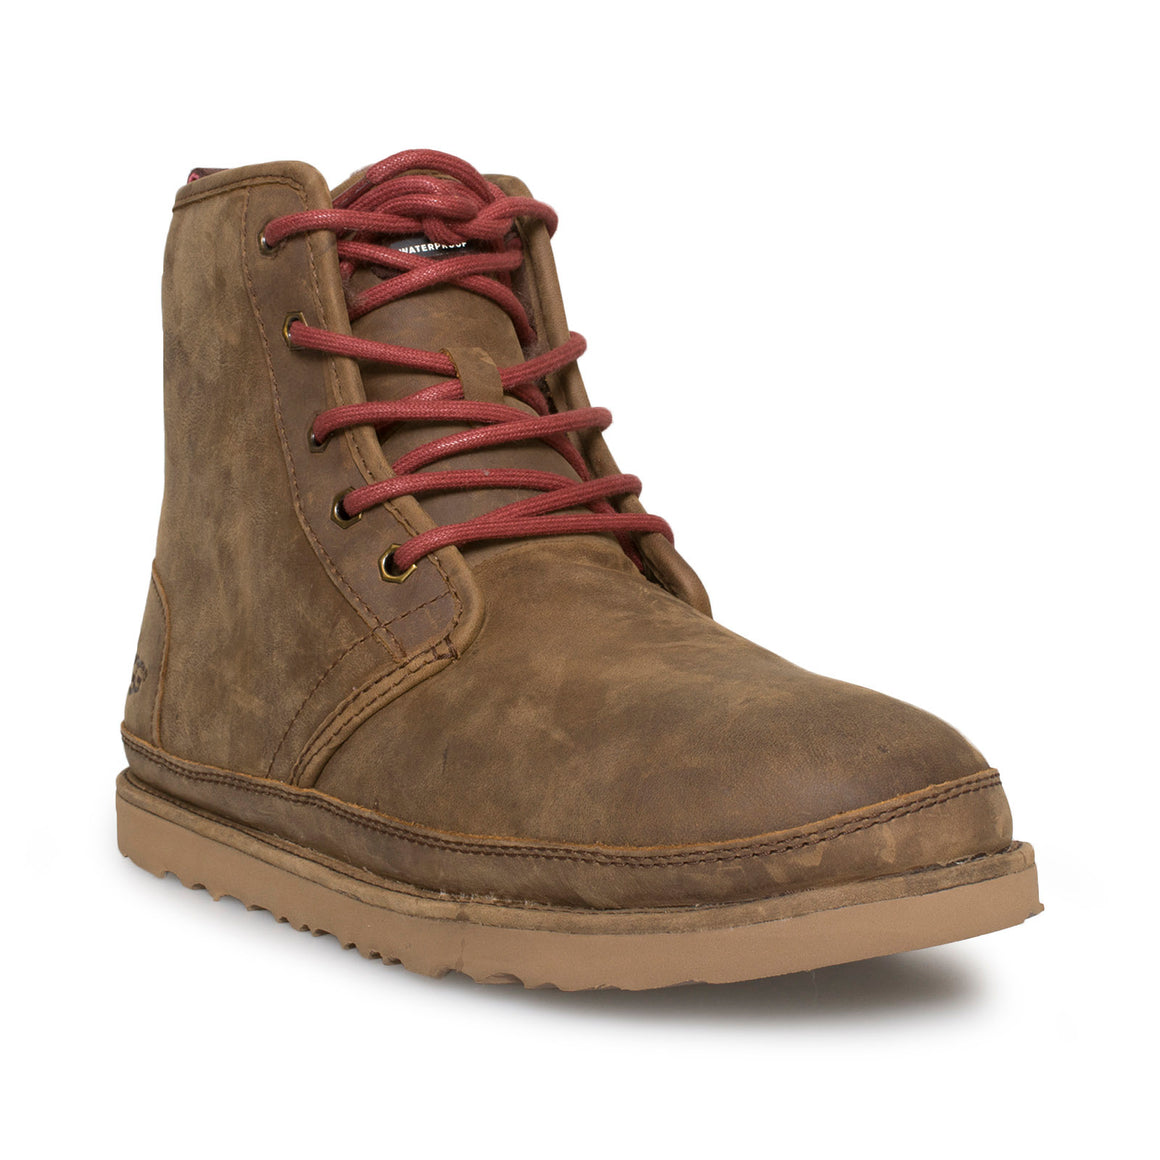 UGG Harkley Grizzly Boots